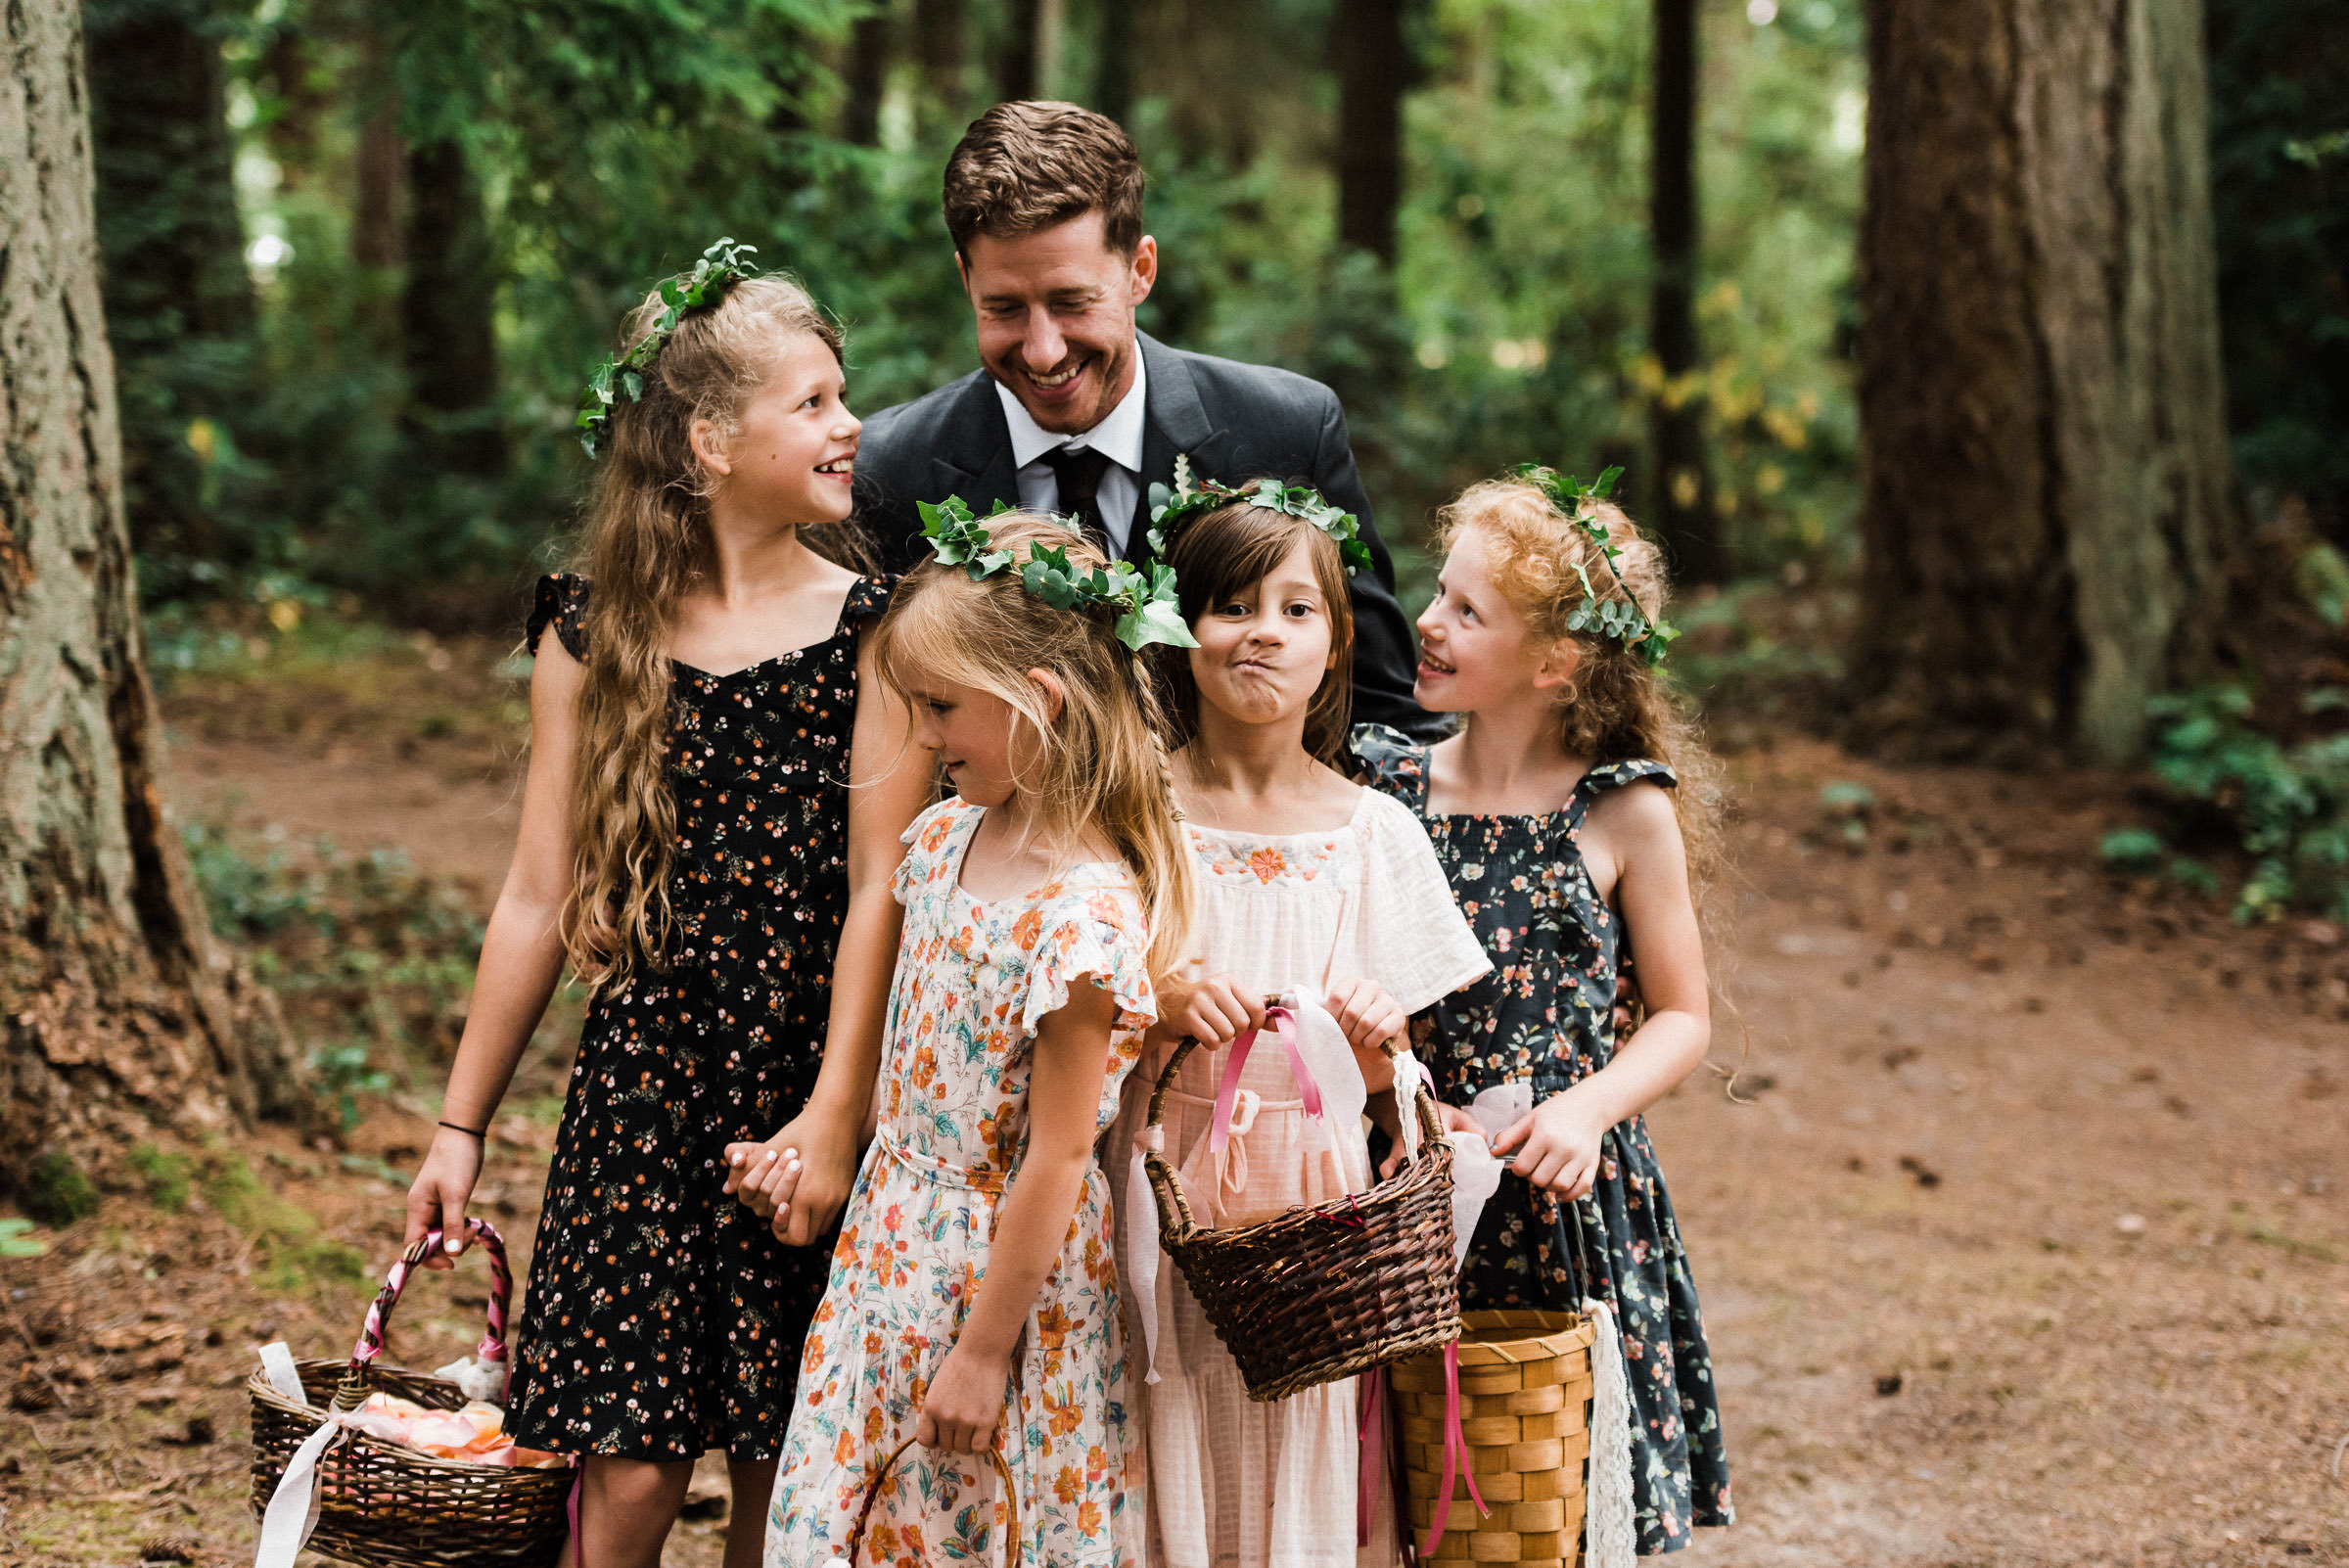 Groom and flower girls during a family friendly outdoor wedding with children in a Pacific Northwest old growth forest.